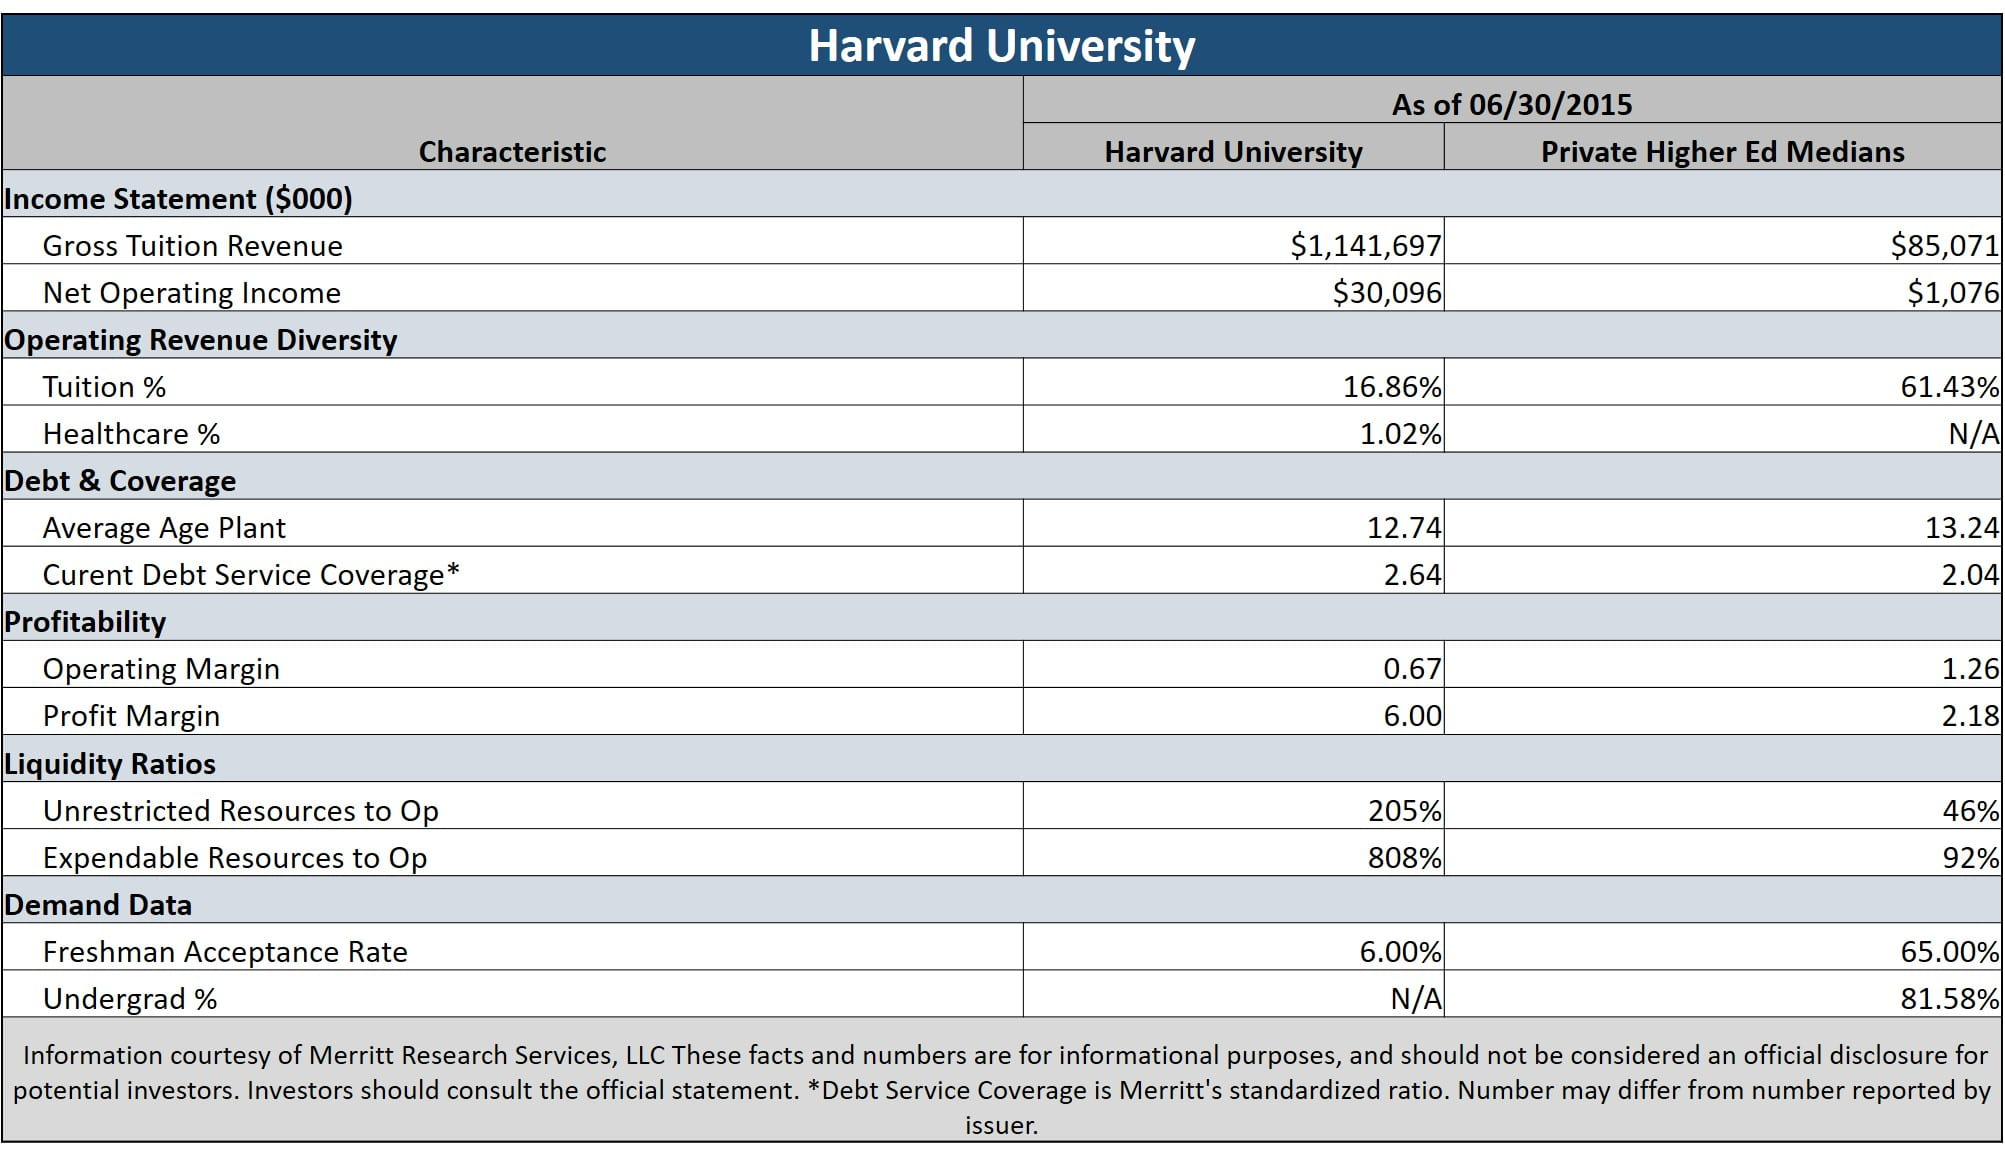 harvard university revenue bonds